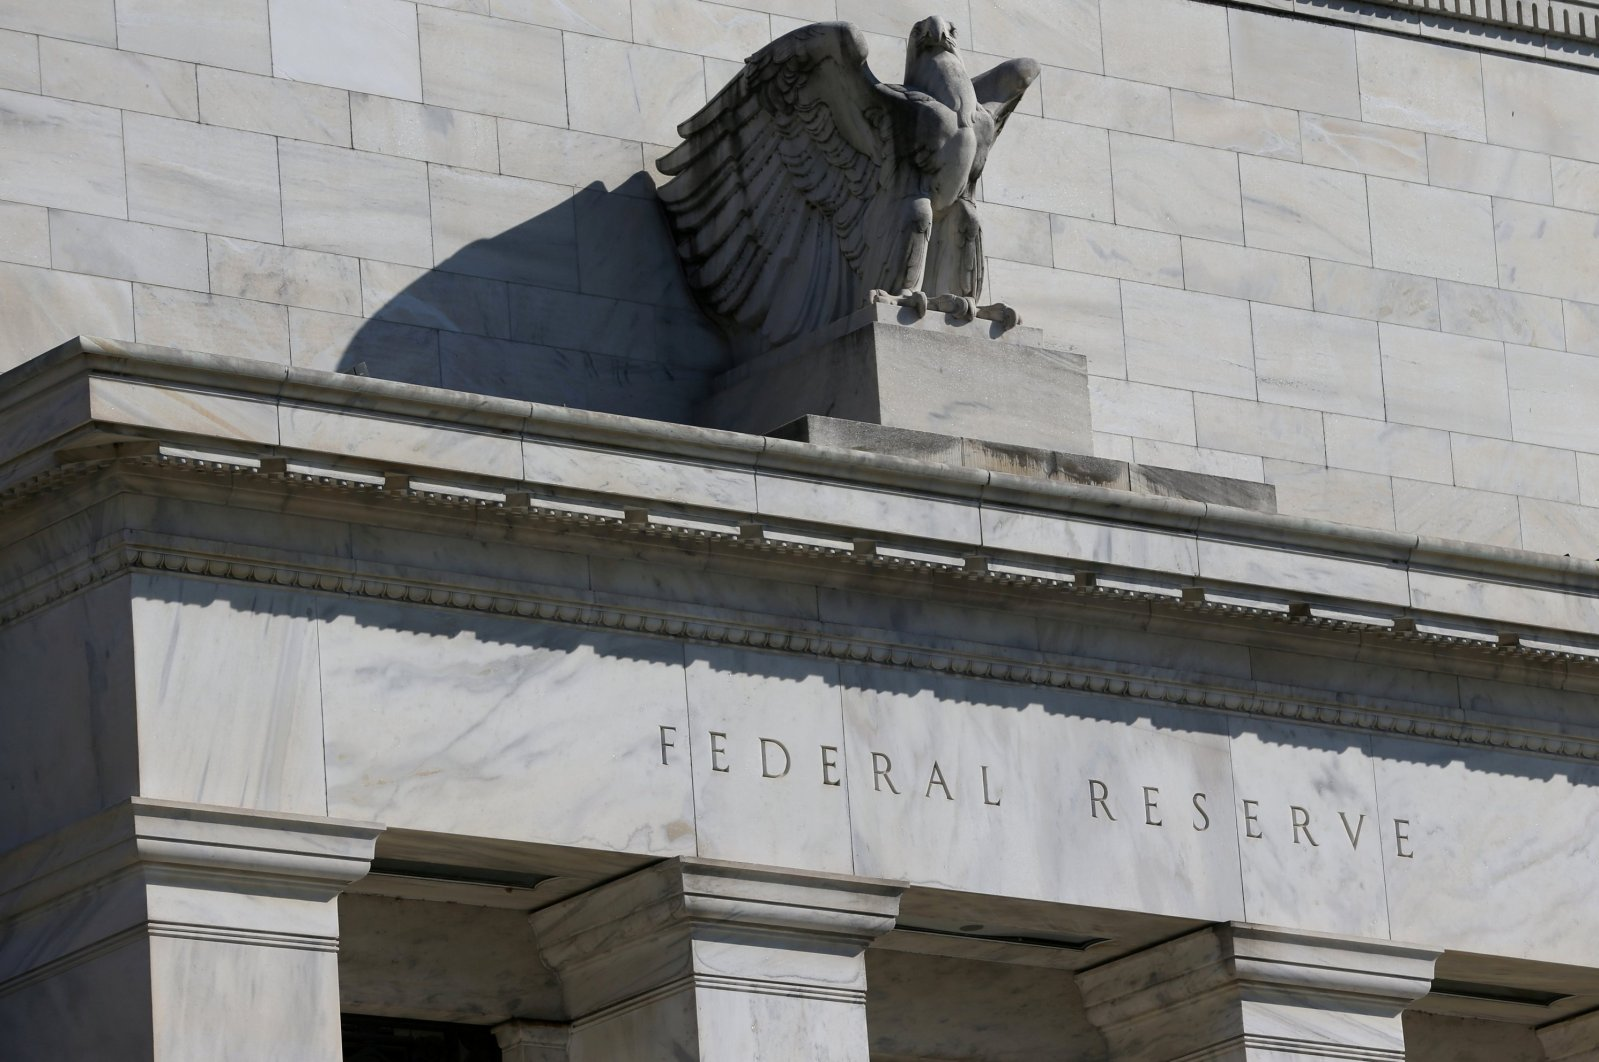 A view of the Federal Reserve building on Constitution Avenue in Washington, D.C., U.S., March 19, 2019. (Reuters Photo)